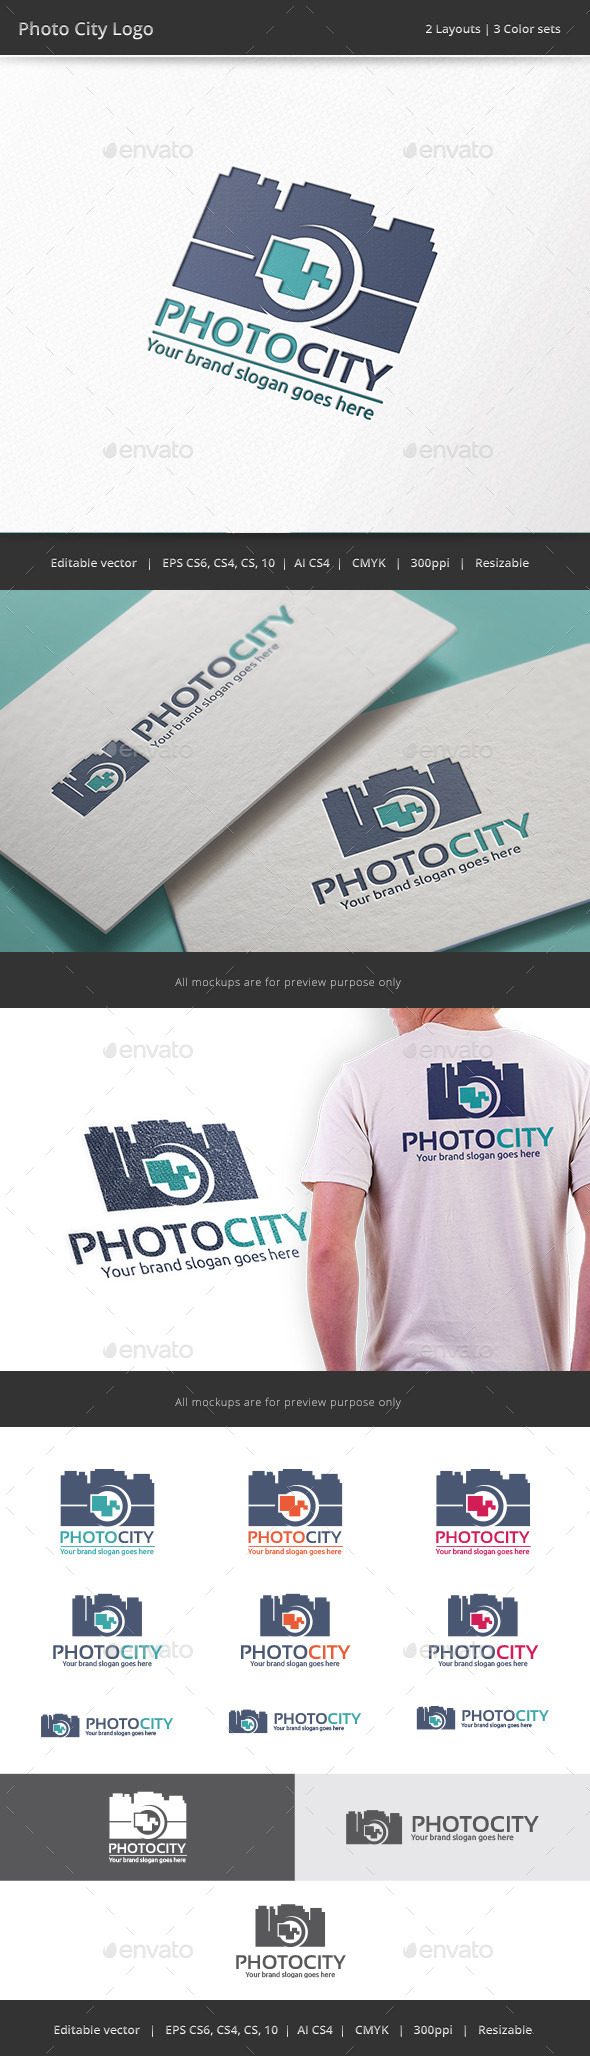 GraphicRiver Photo City Camera Logo 8924443